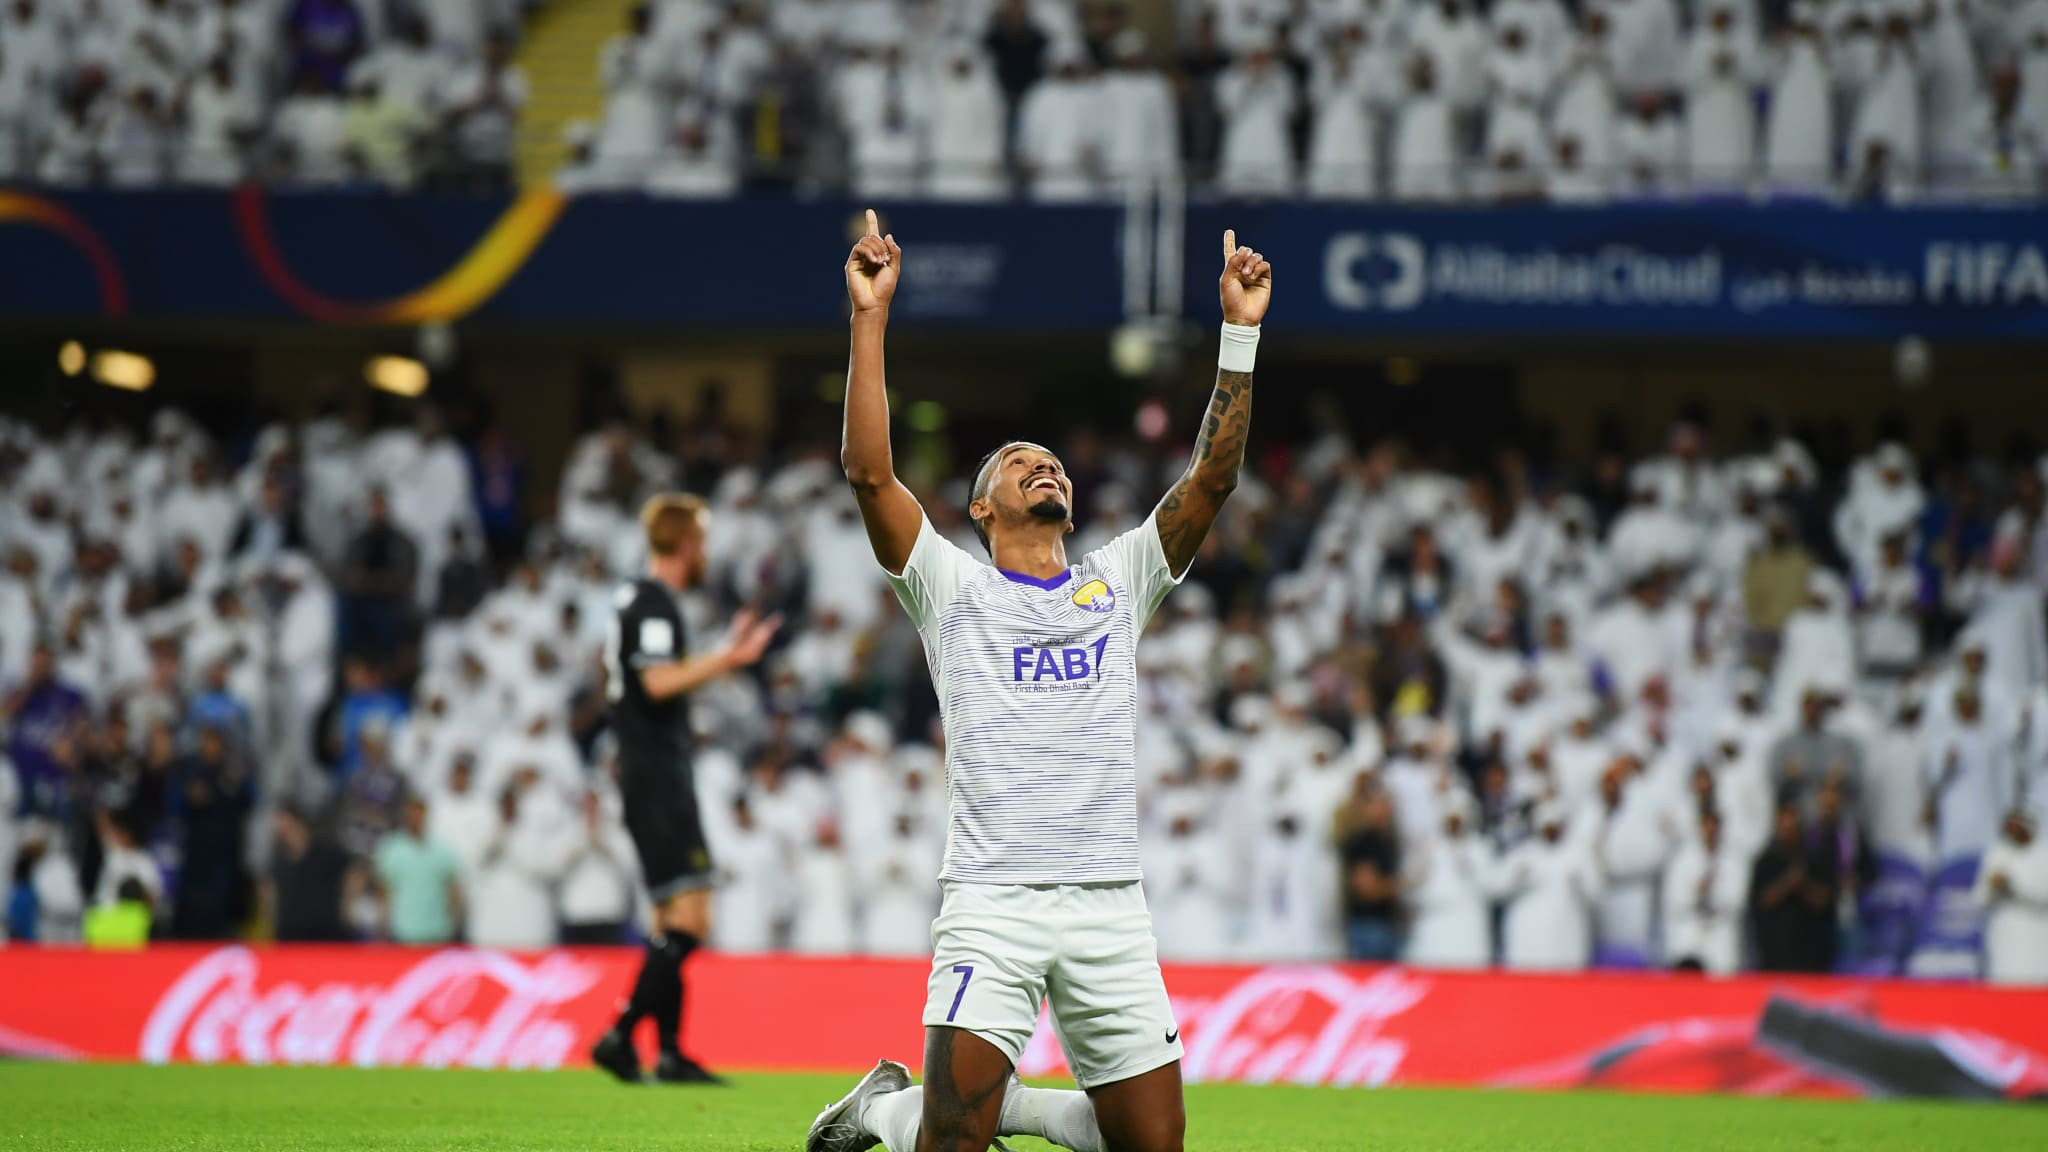 Home side Al Ain open FIFA Club World Cup in UAE with penalty shoot-out win against New Zealand's Team Wellington